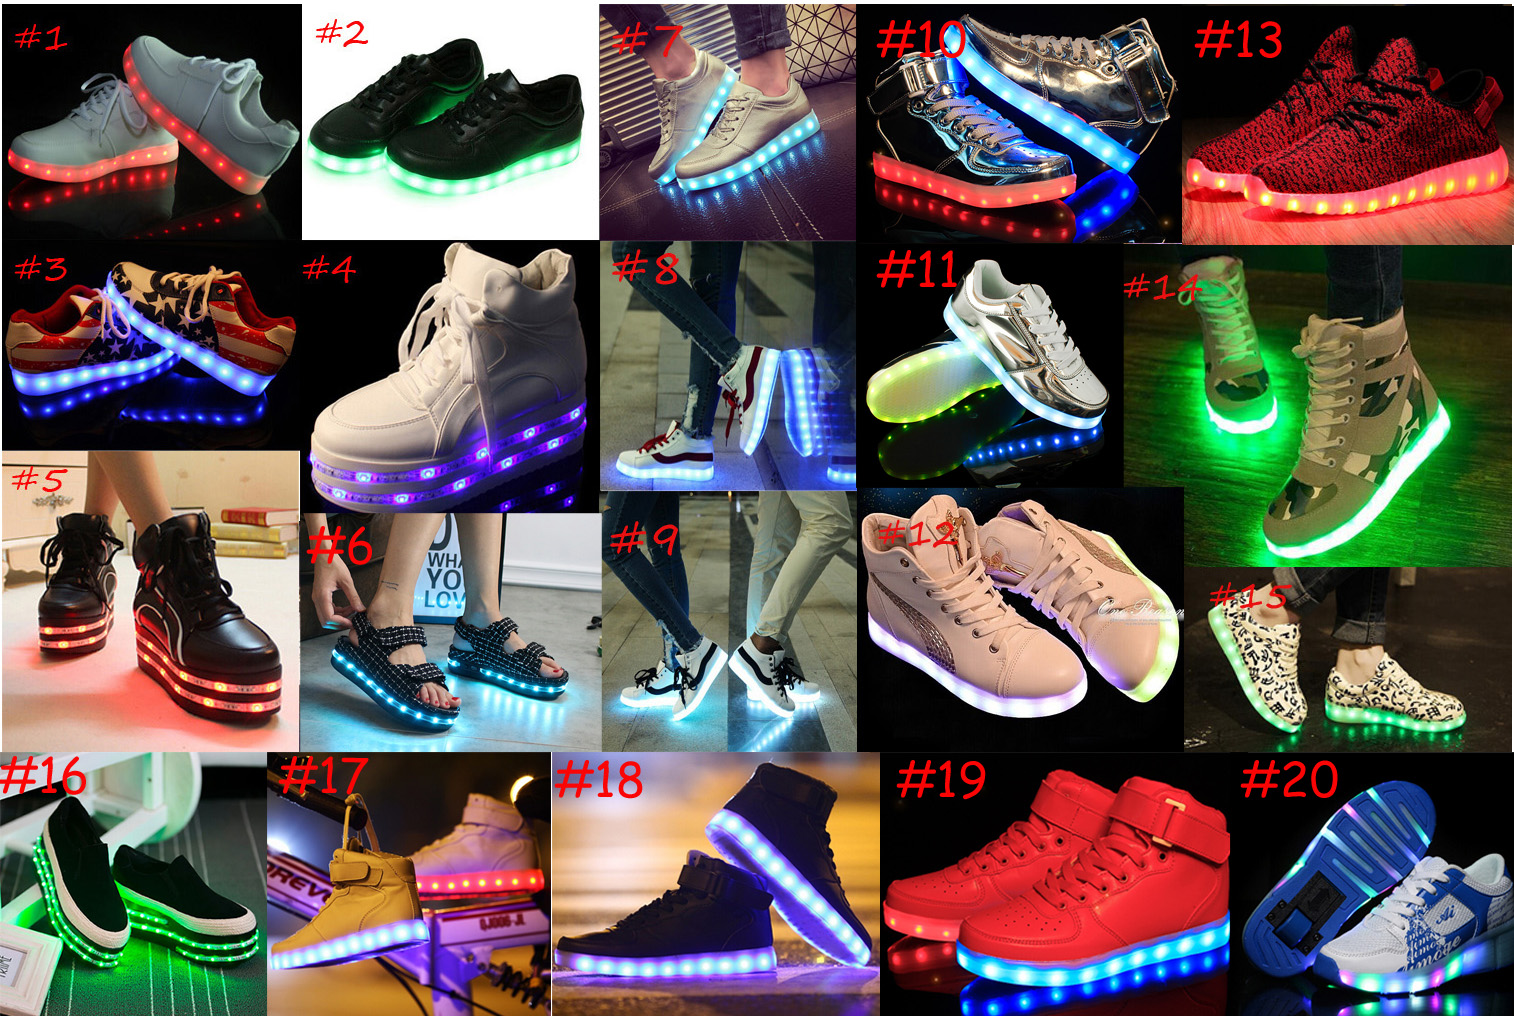 Led shoes designs updated.jpg